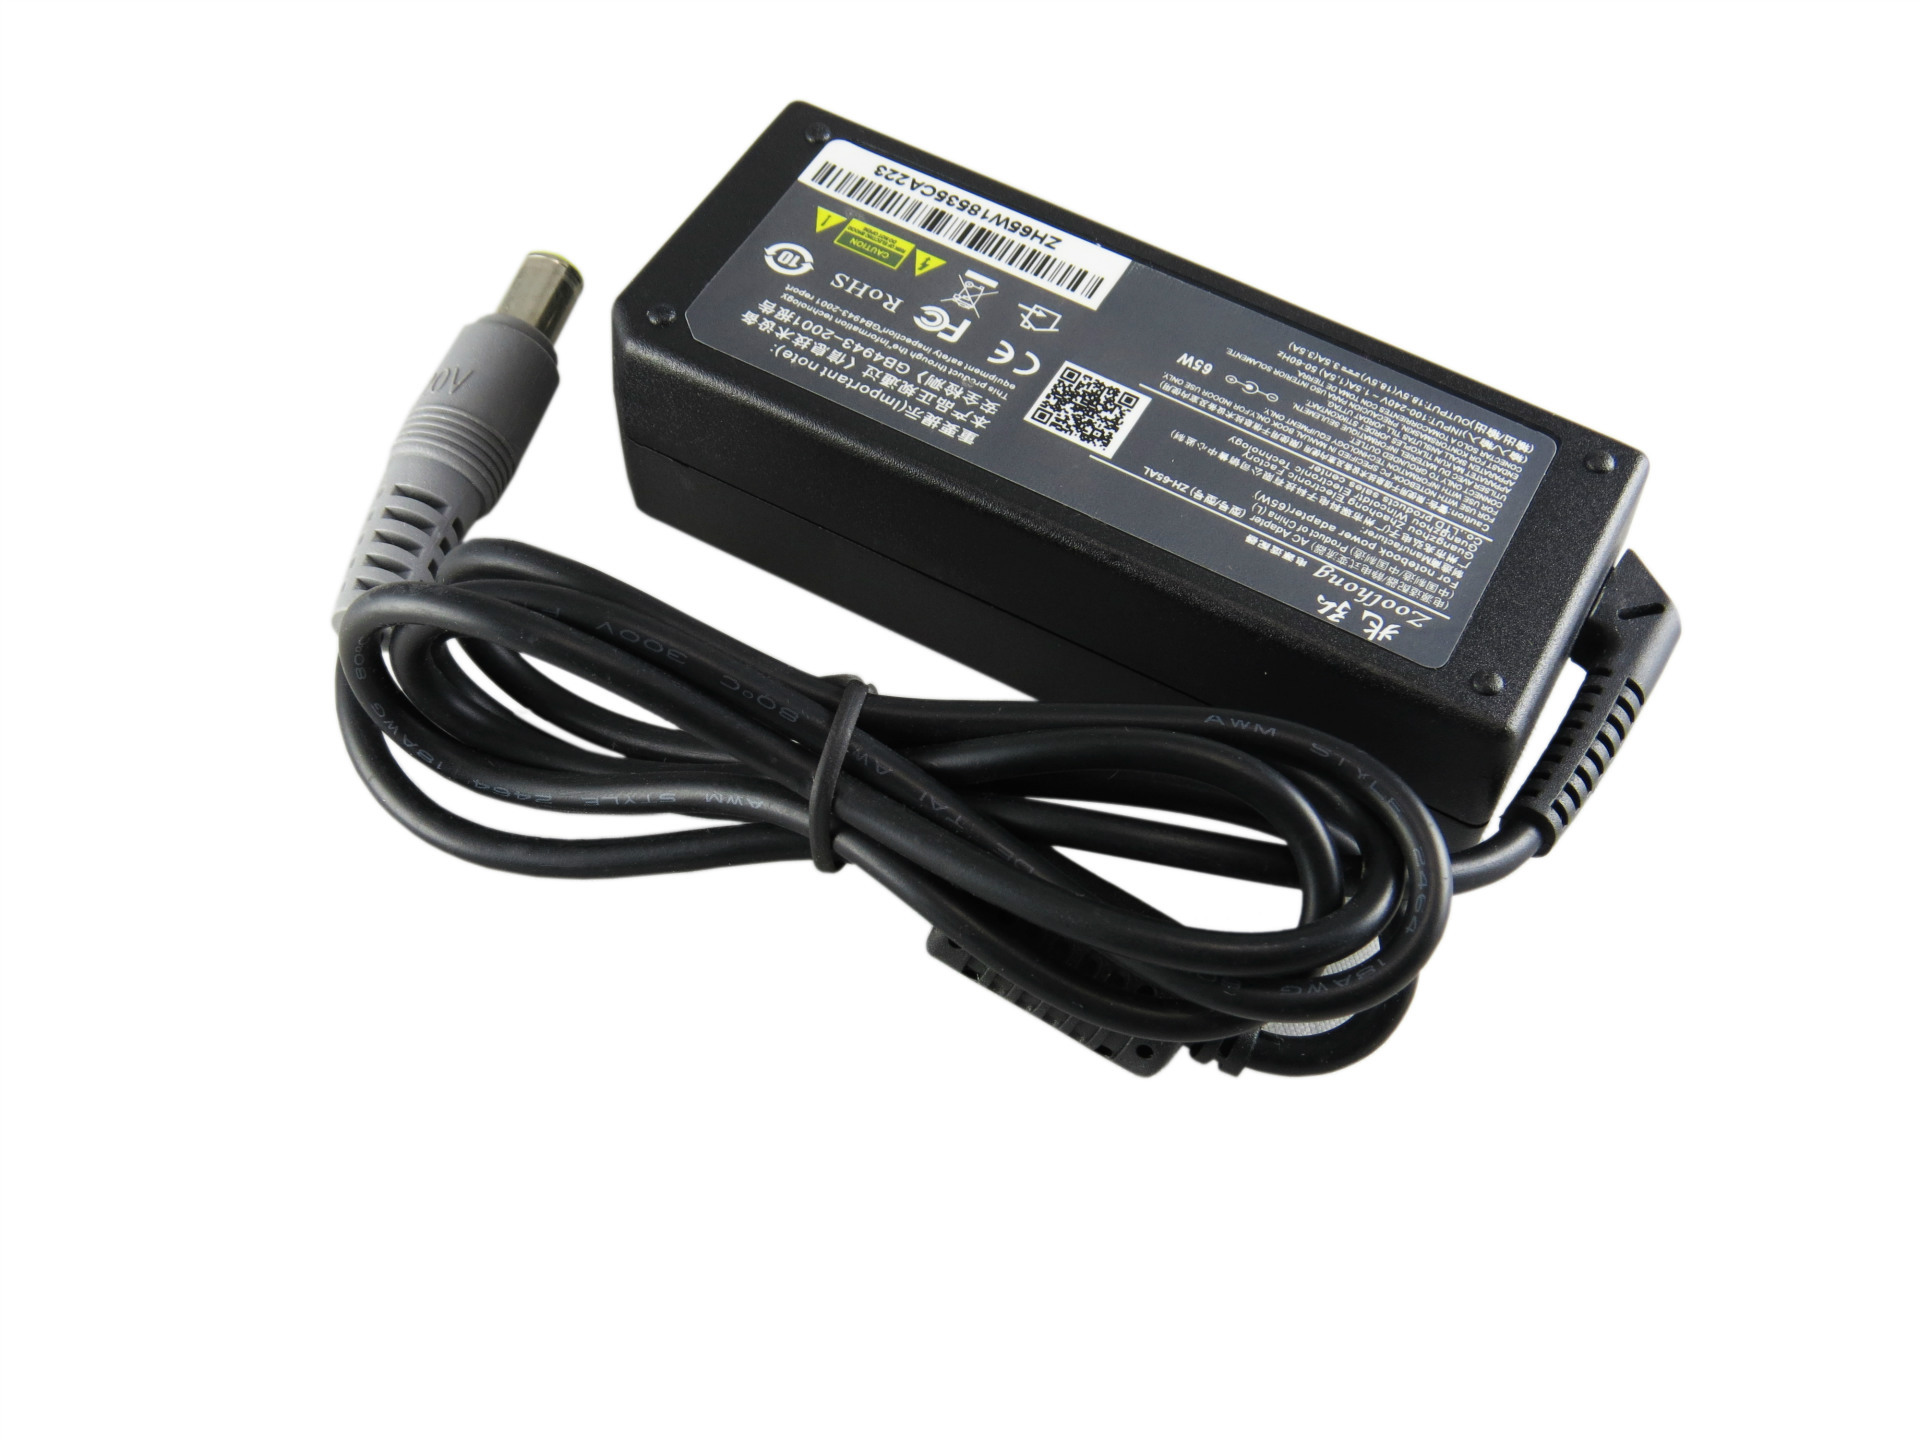 20v 4.5a 7.9mm*5.5mm Ac Power Laptop Adapter Charger Supply For Lenovo Ibm Thinkpad R61 R61e T60 T61 X61 Sl400 X200 T410 Laptop Adapter